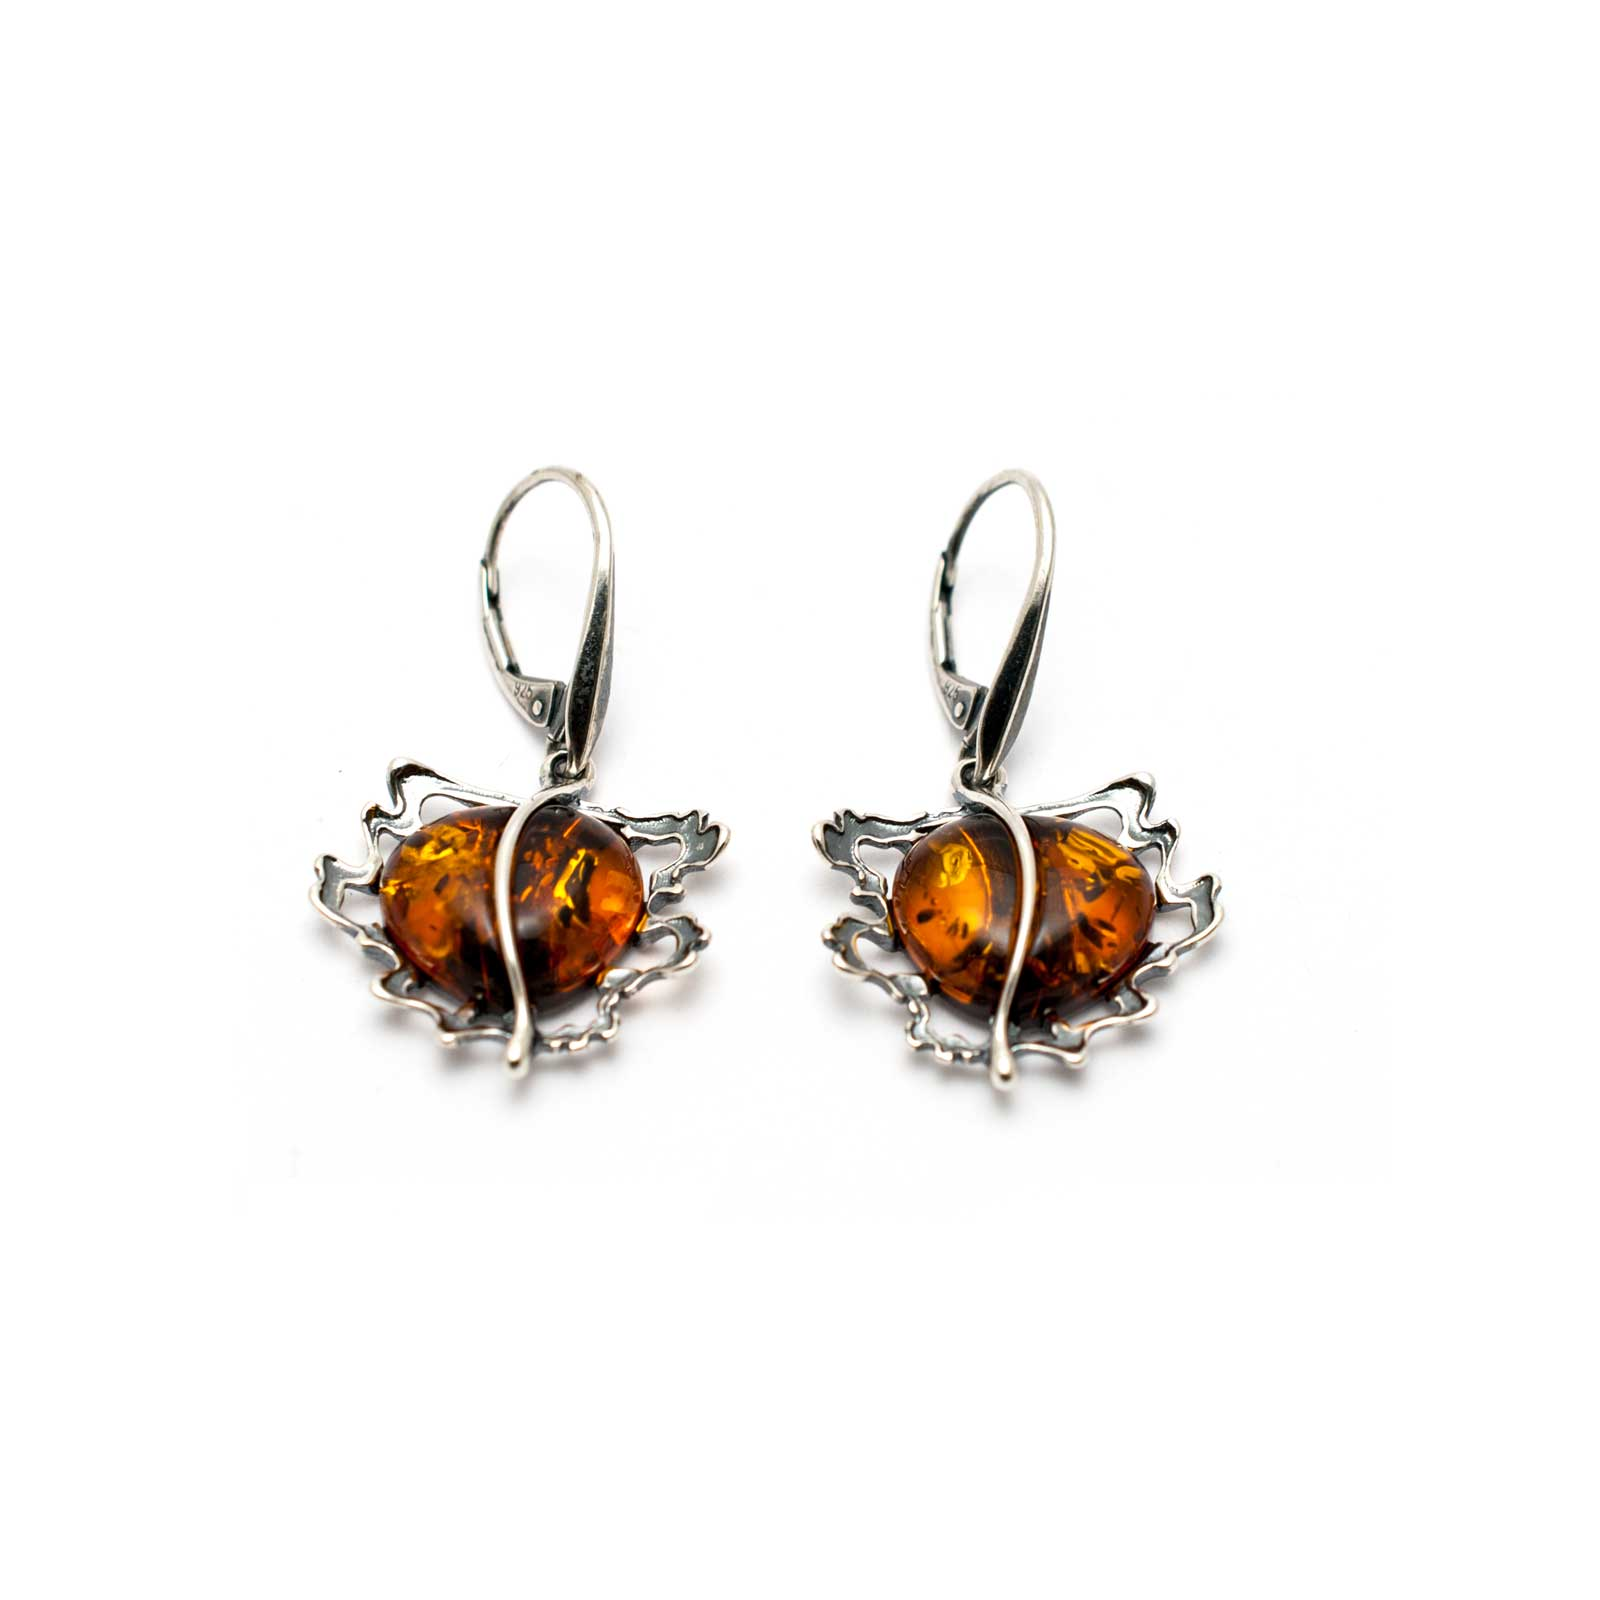 "Vintage Silver Earrings with Cognac Amber ""Apple"""